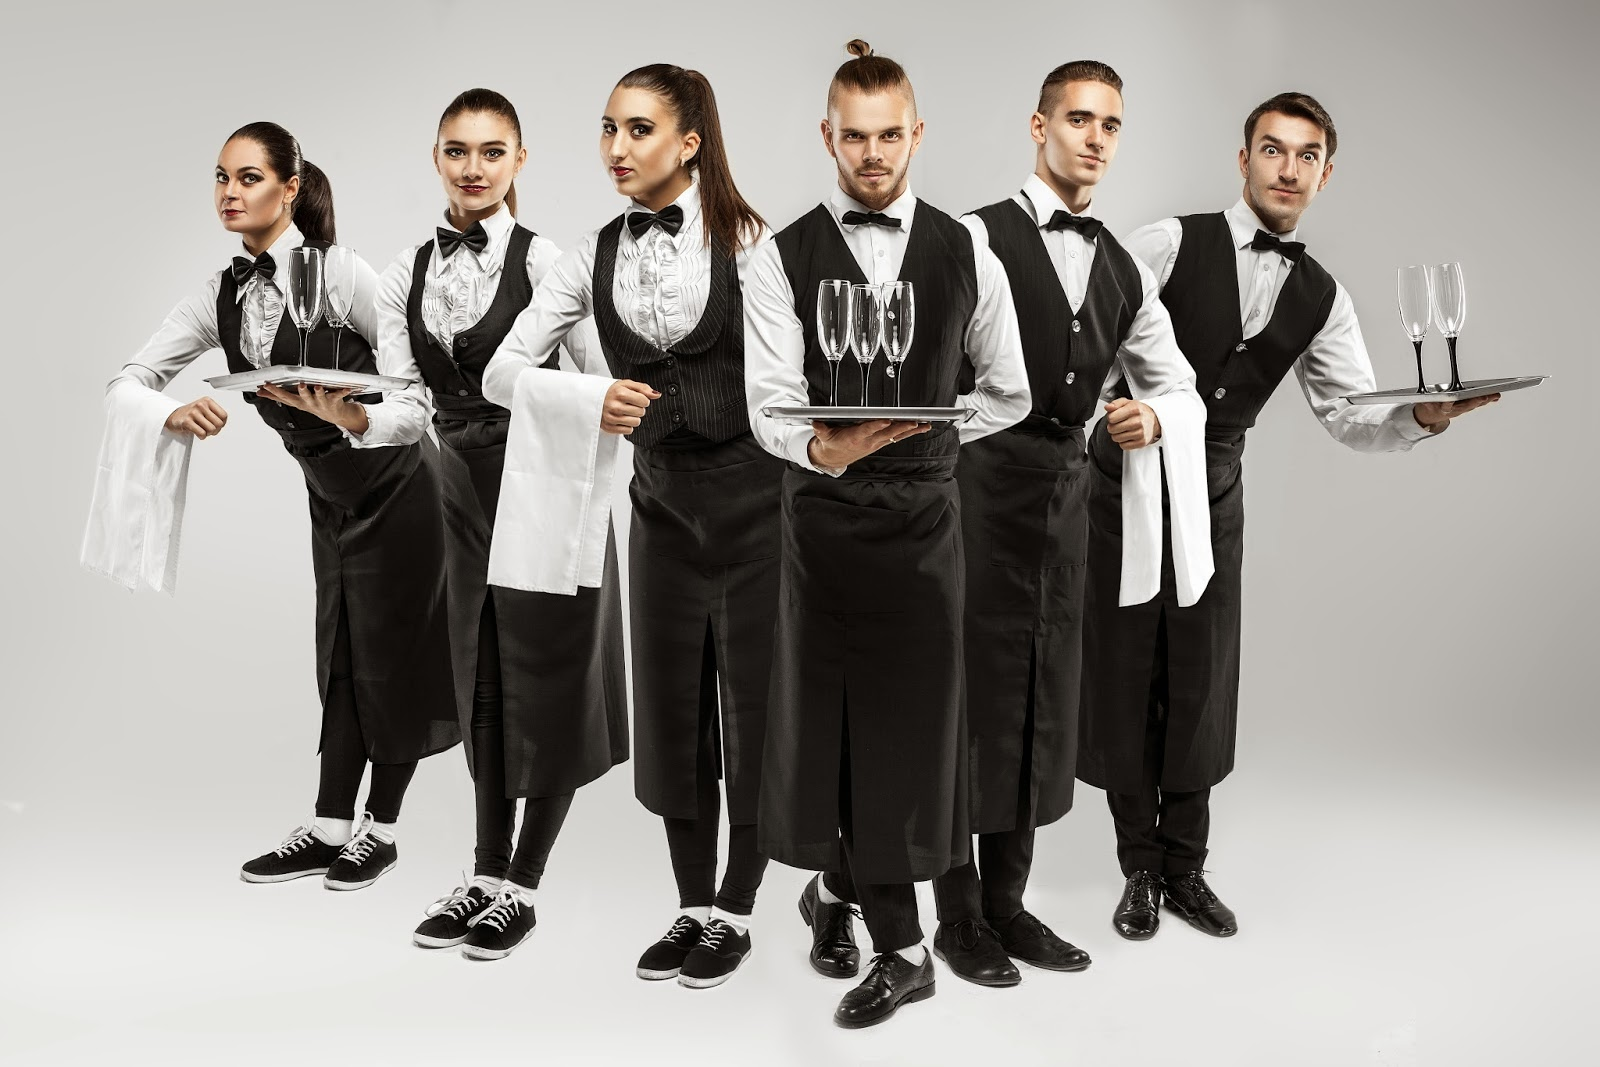 waiter wallpapers high quality